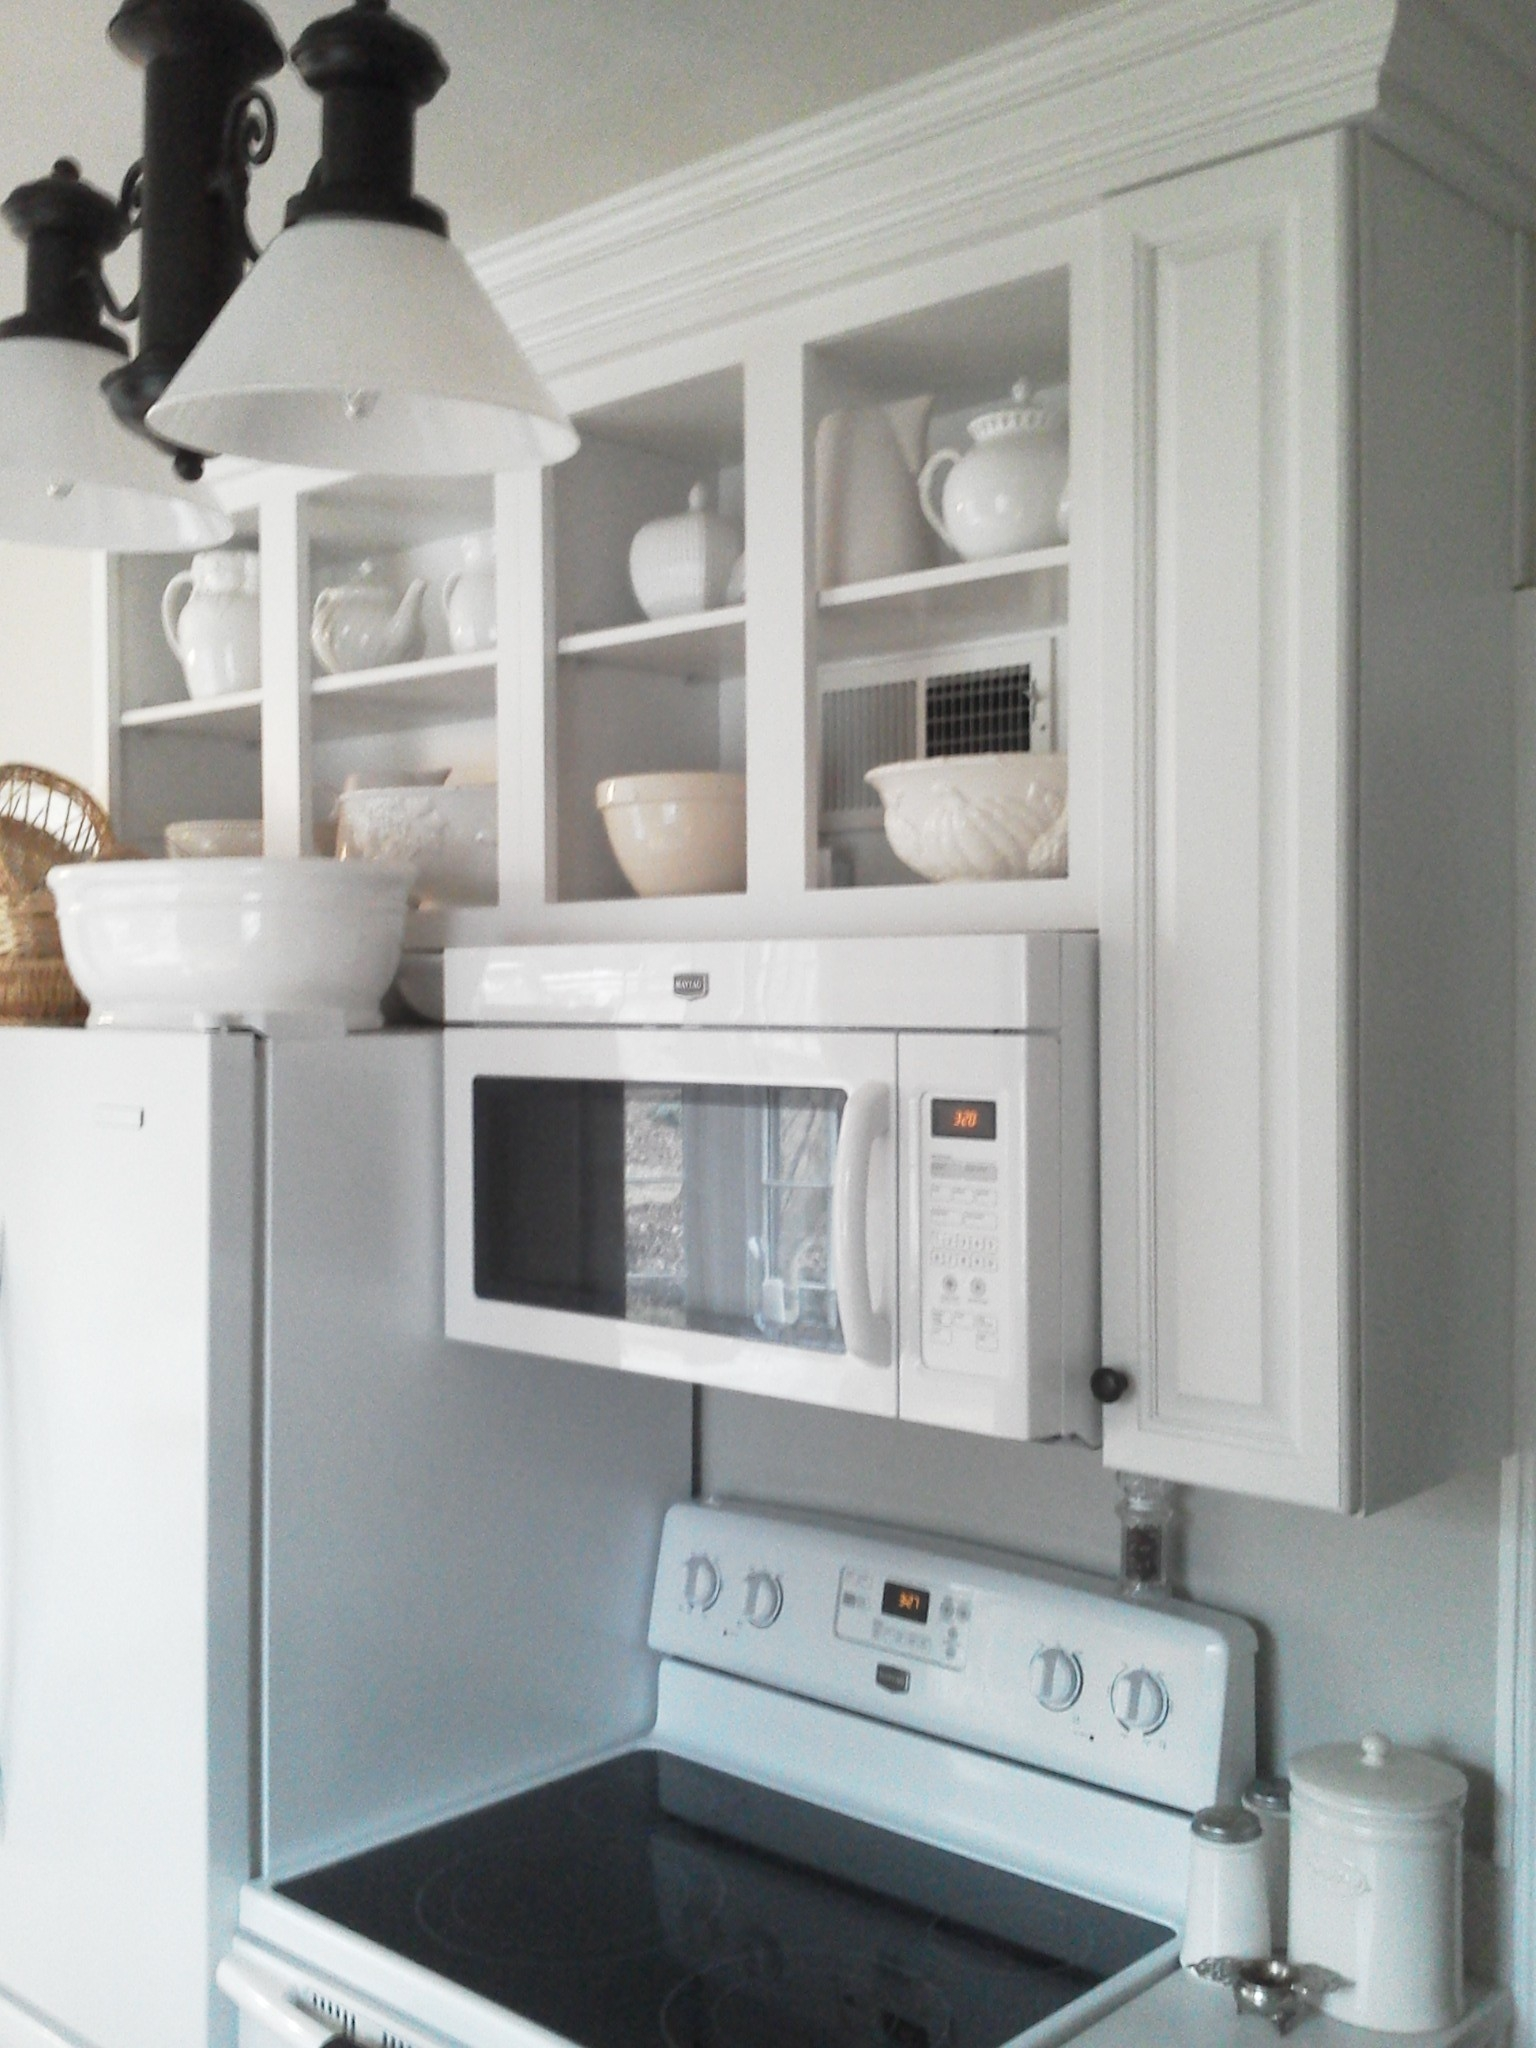 Kitchen Cabinets Microwave Shelf